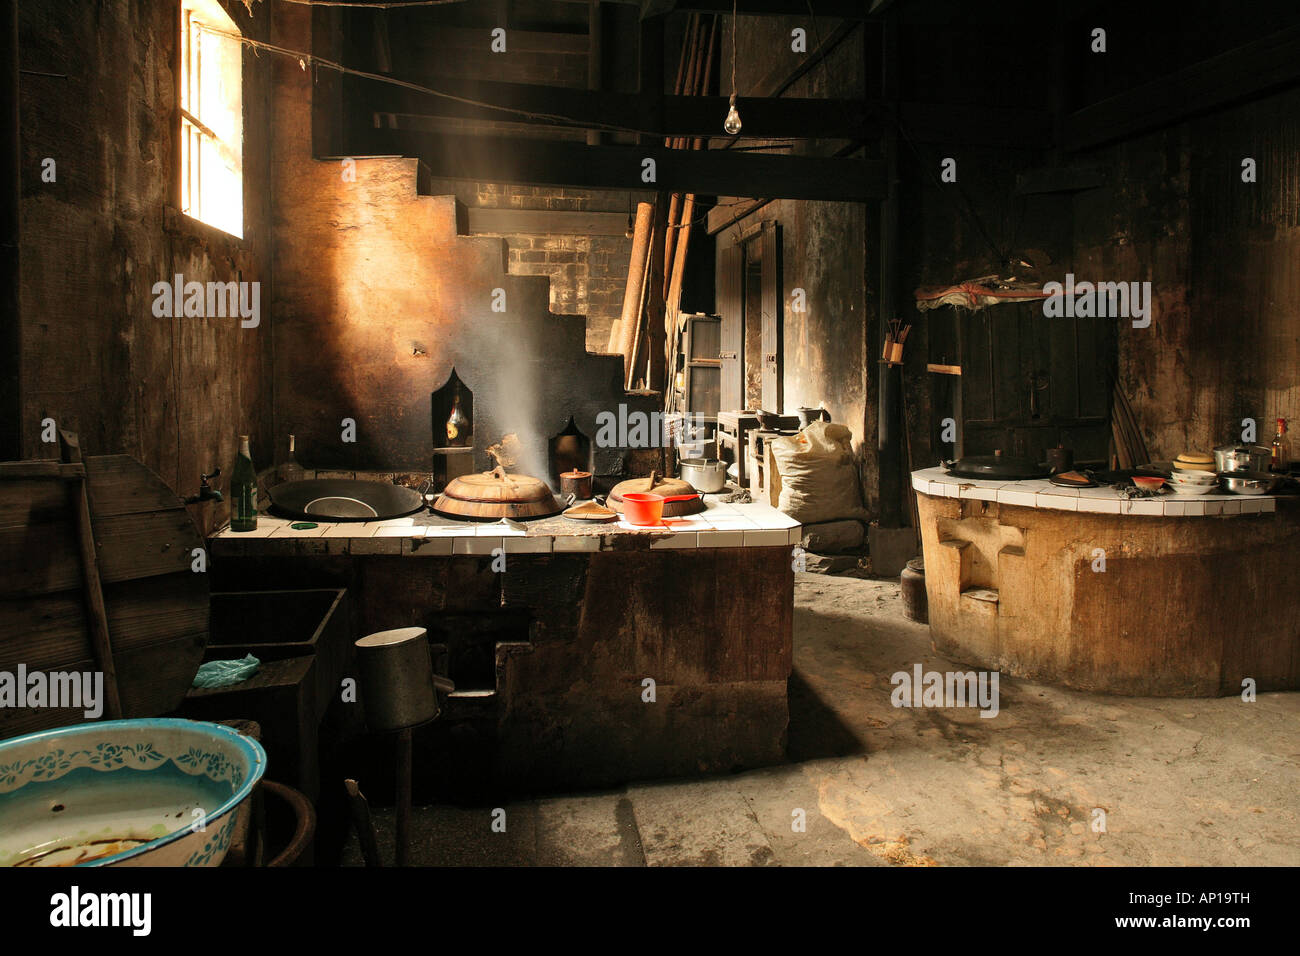 Interior view of a traditional kitchen in an old timber for Traditional korean kitchen